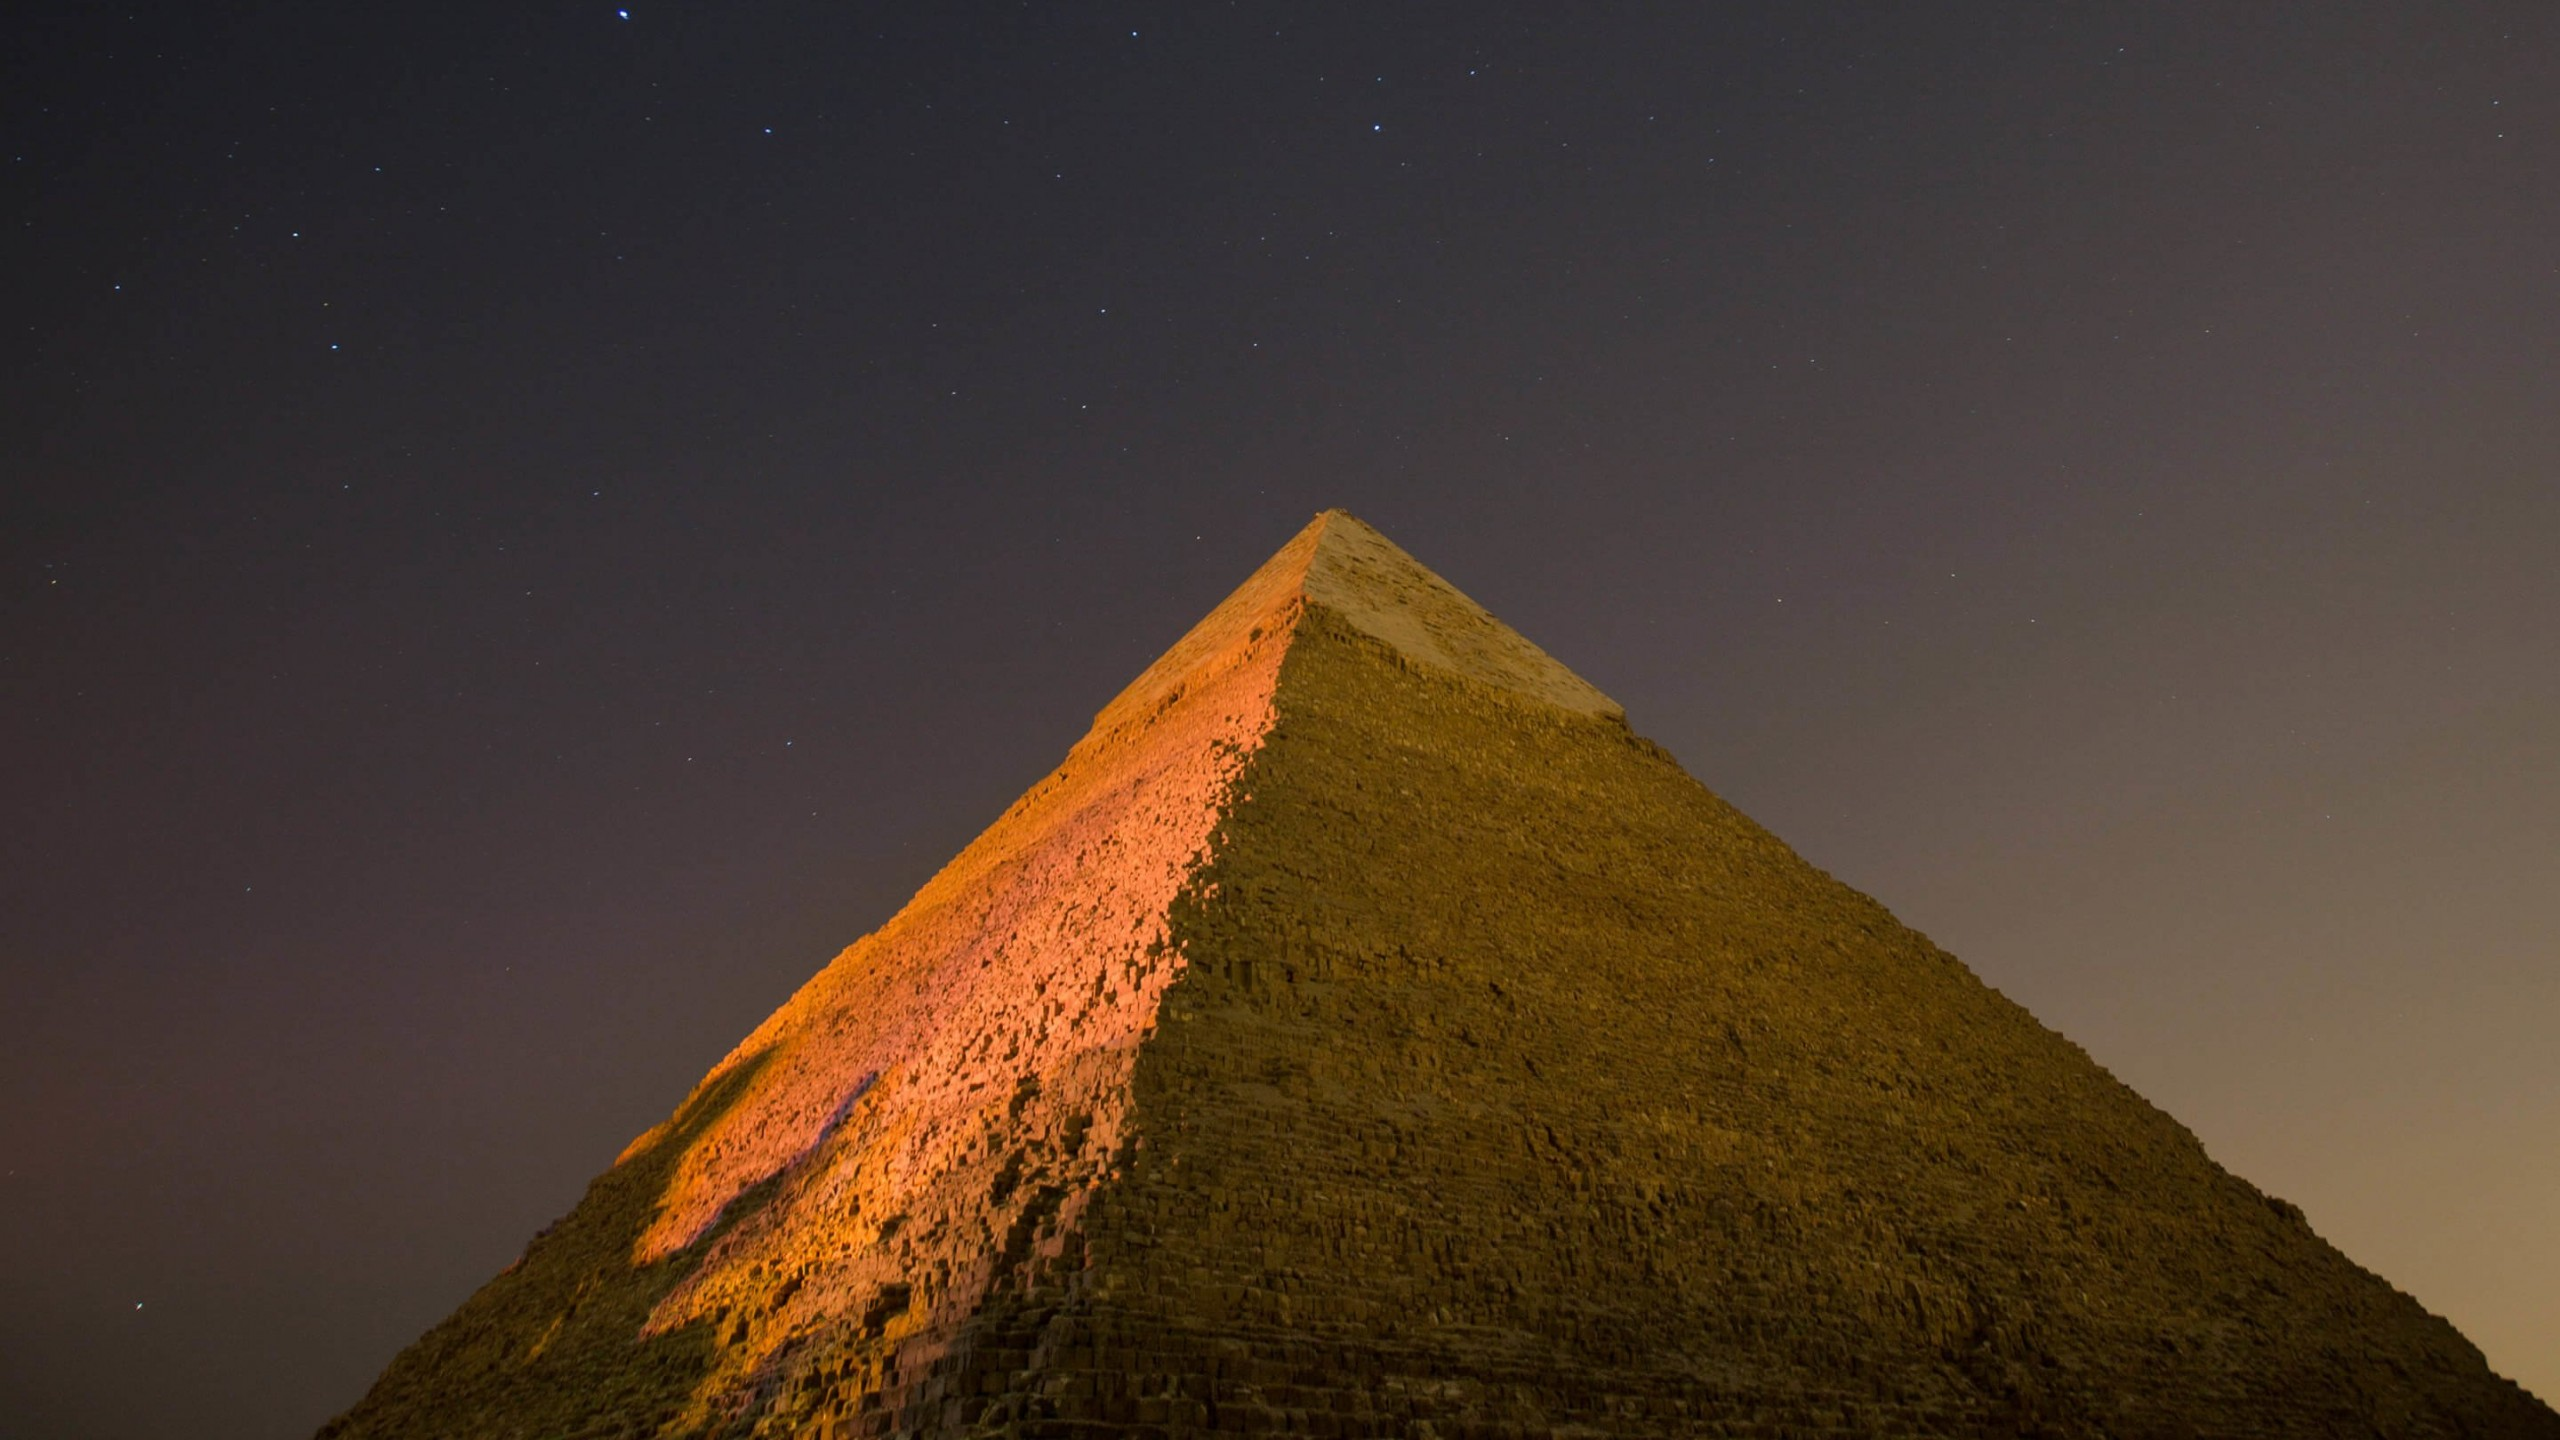 Download Pyramid by Night HD wallpaper for 2560 x 1440 - HDwallpapers ...: hdwallpapers.net/preview/pyramid-by-night-wallpaper-for-2560x1440...